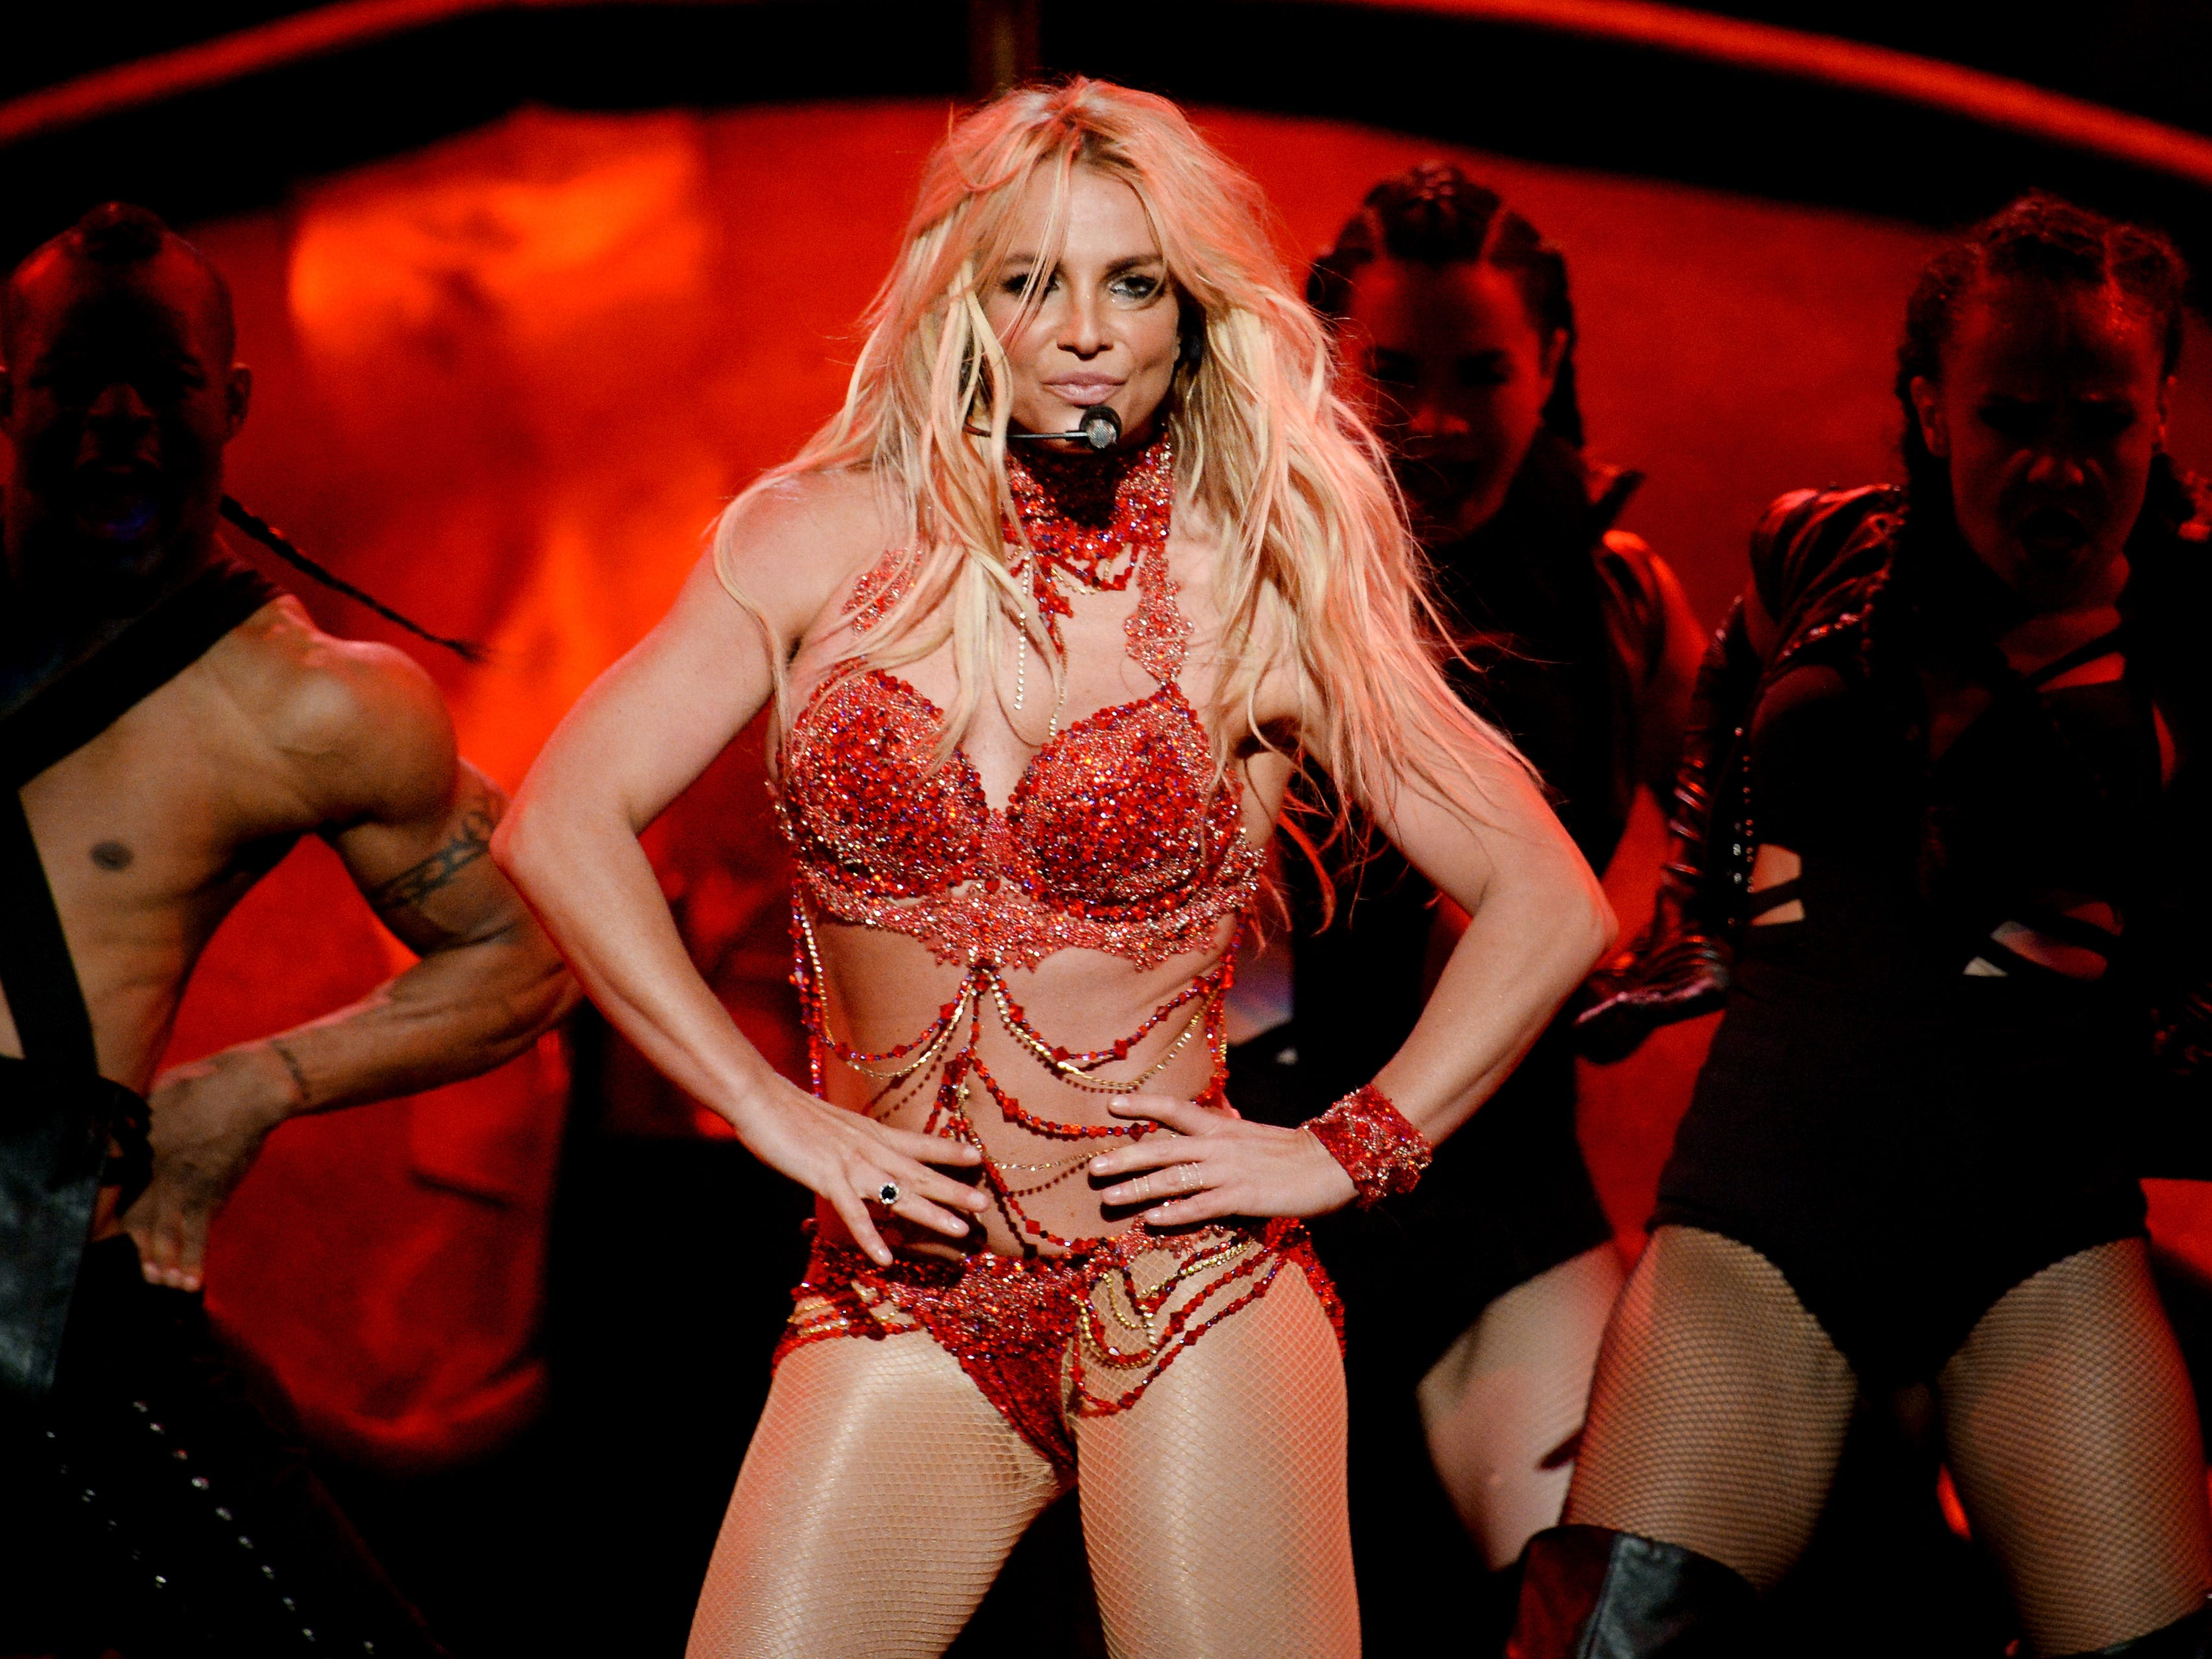 LAS VEGAS, NV - MAY 22:  Recording artist Britney Spears performs onstage during the 2016 Billboard Music Awards at T-Mobile Arena on May 22, 2016 in Las Vegas, Nevada.  (Photo by Kevin Winter/Getty Images) ORG XMIT: 631009835 ORIG FILE ID: 533589178